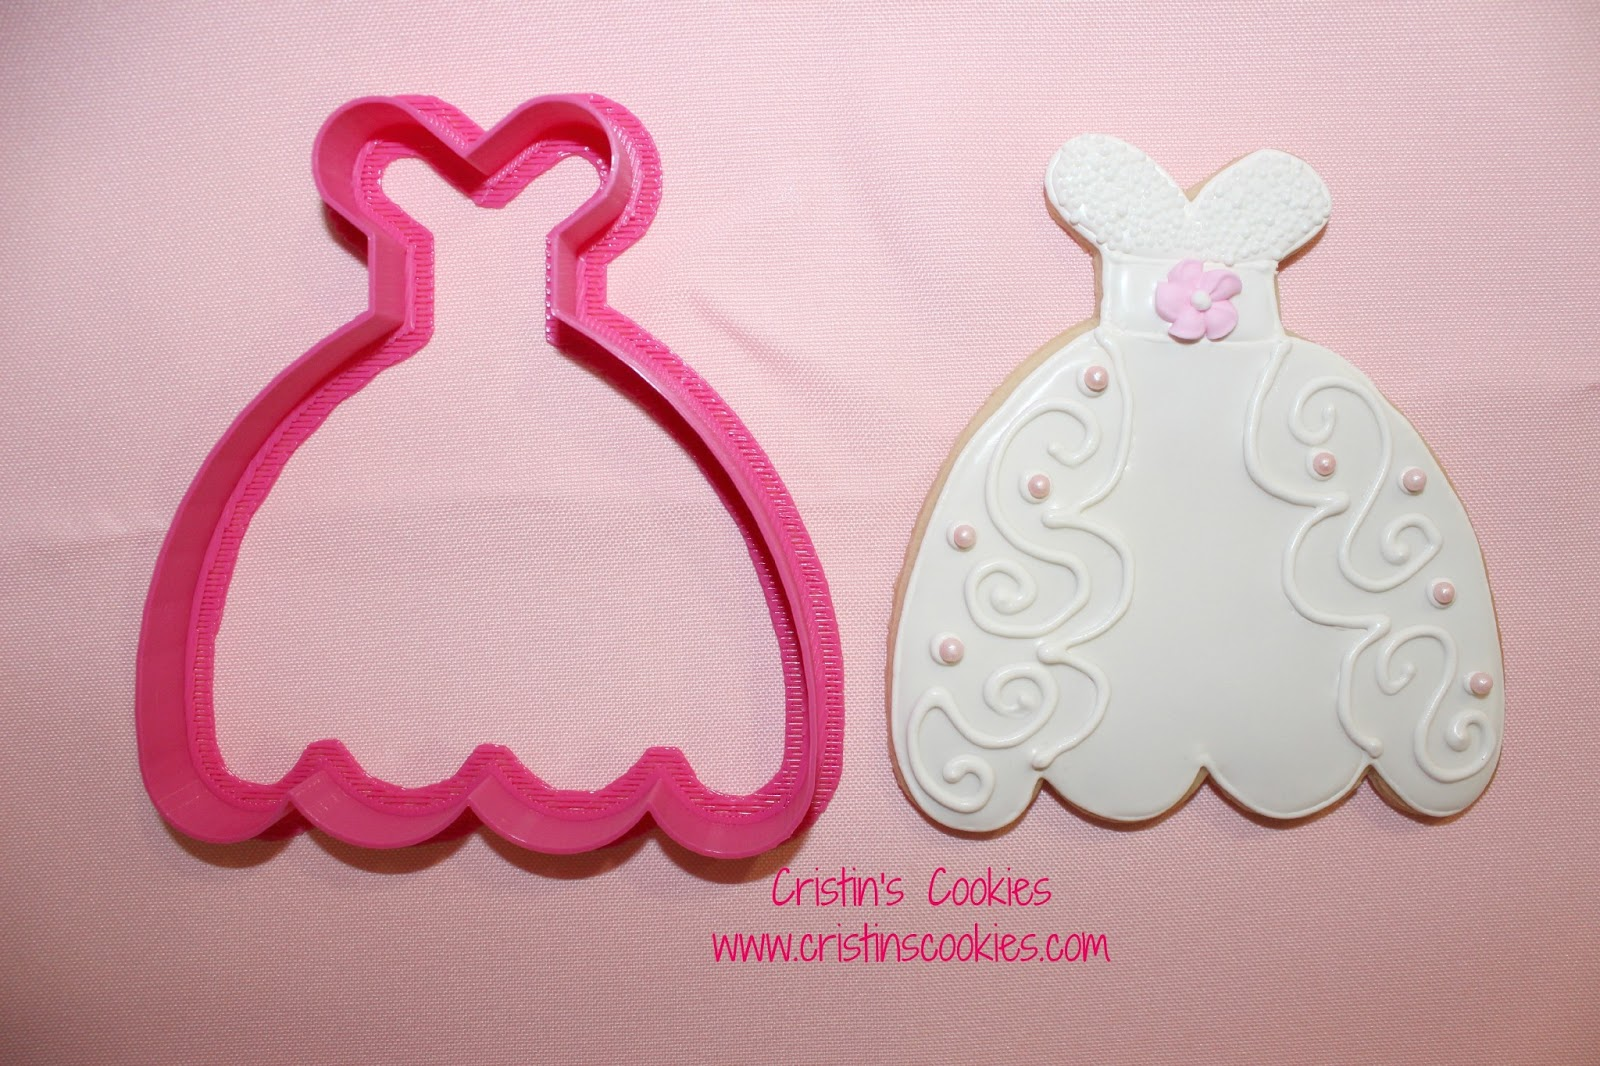 Cristin\'s Cookies: Wedding Dress Cookies and a New Cookie Cutter